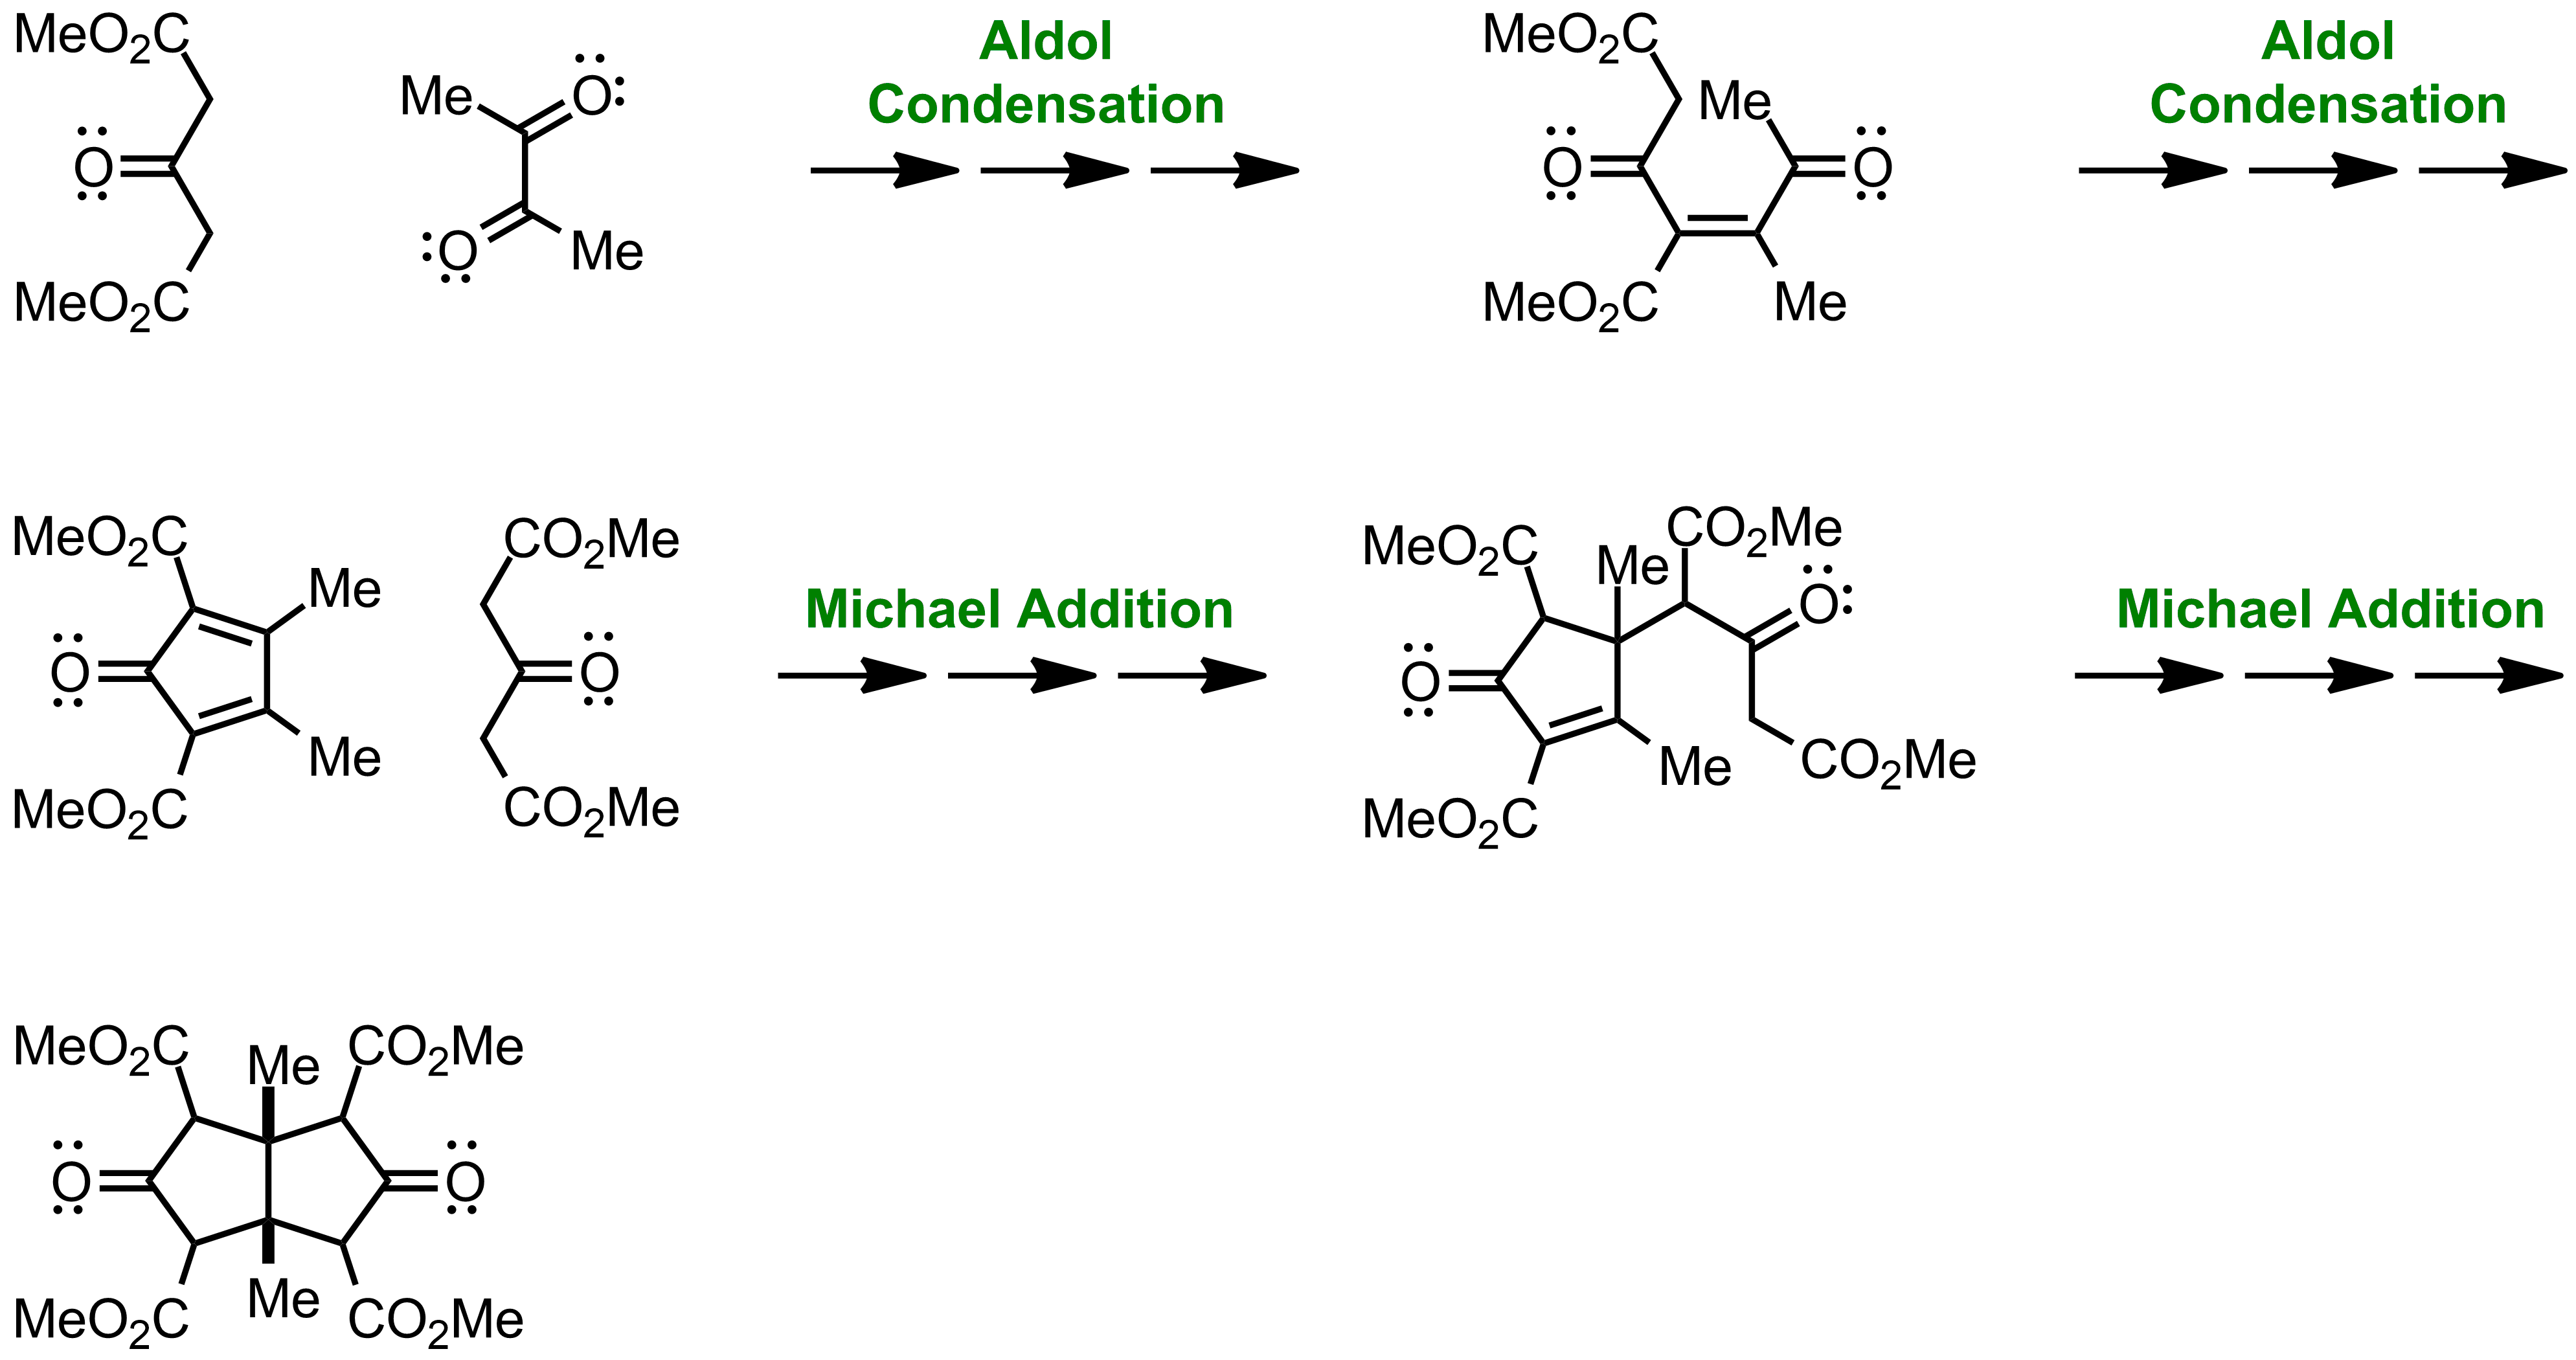 Mechanism of the Weiss-Cook Condensation